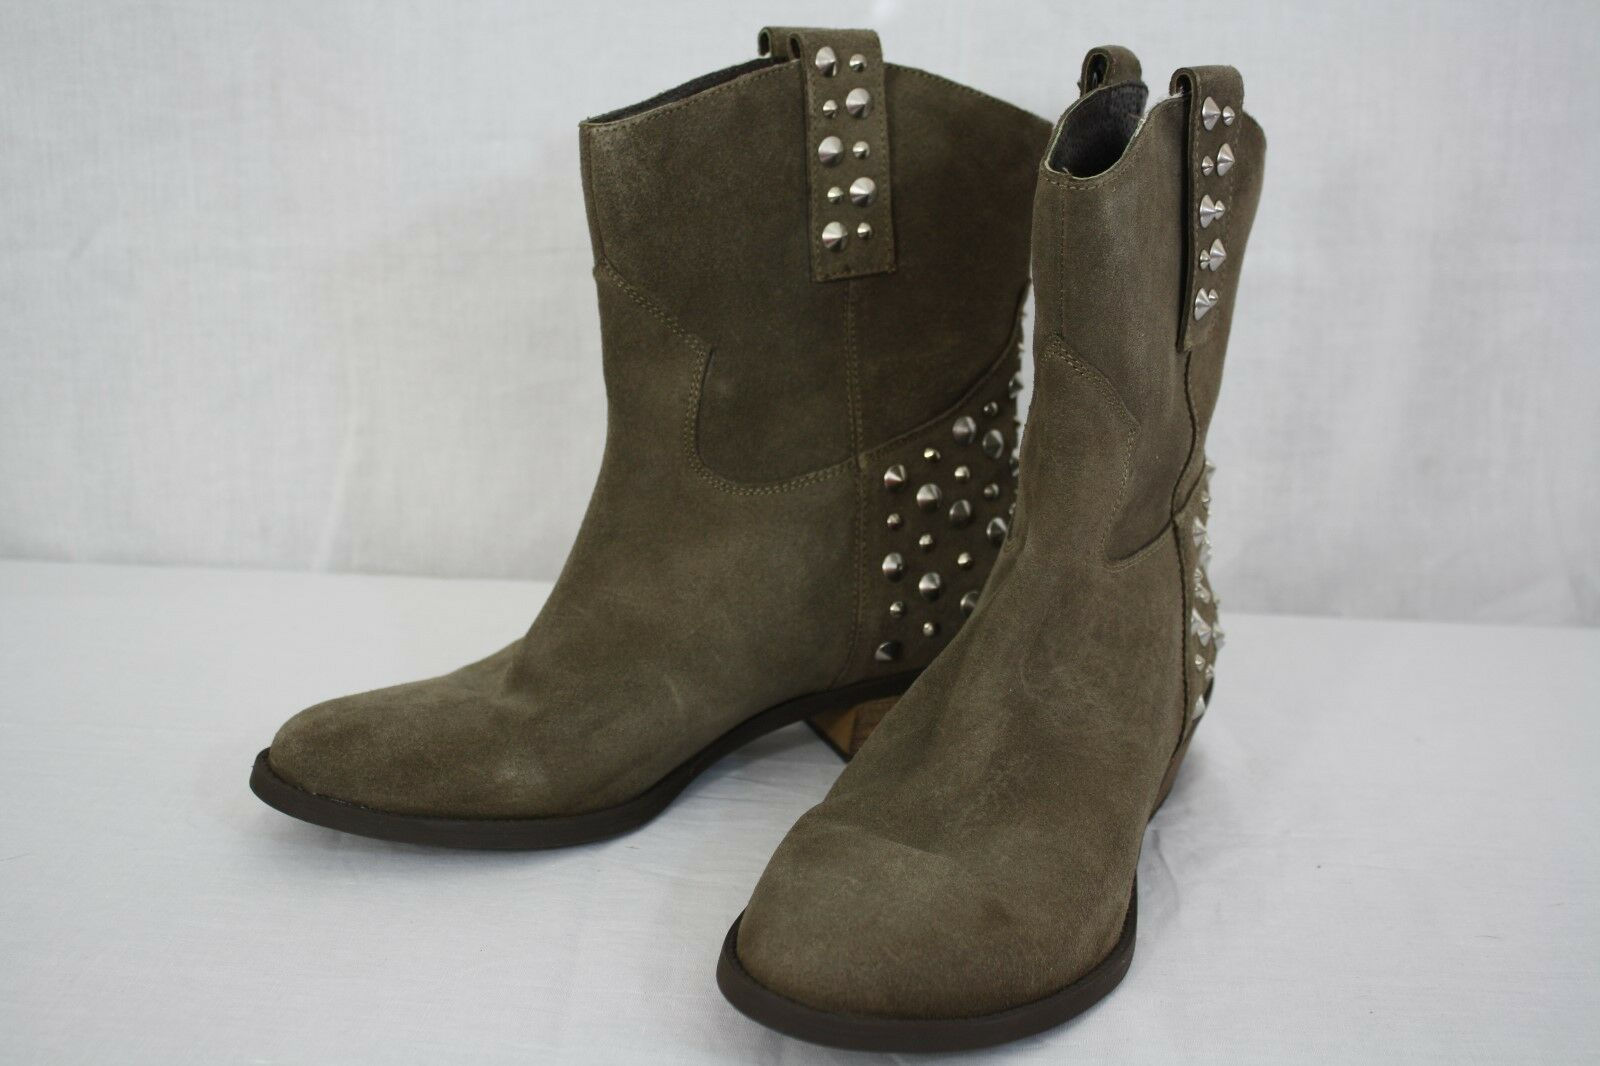 Bakers Ankle High Suede Leather Sequined Boots Size 10